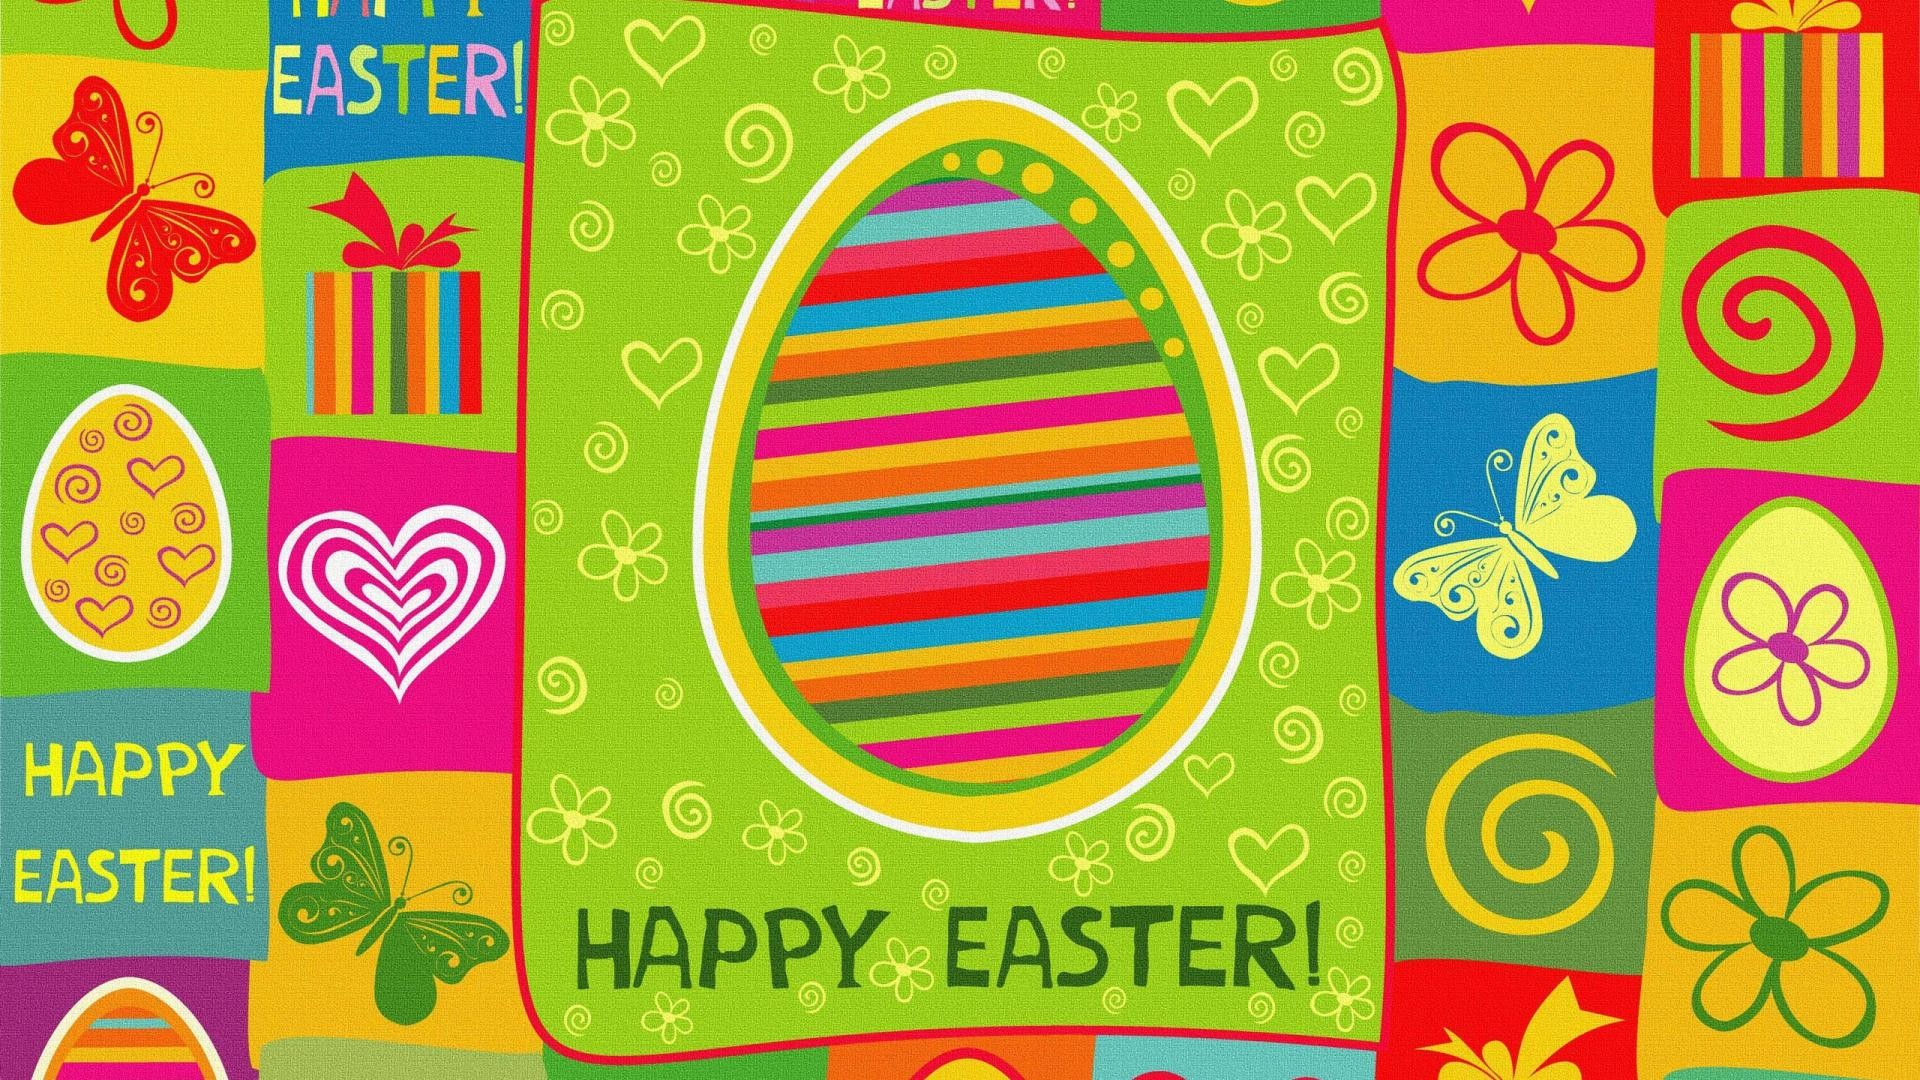 1920x1080 wallpaper for easter sunday happy easter day hd wallpaper